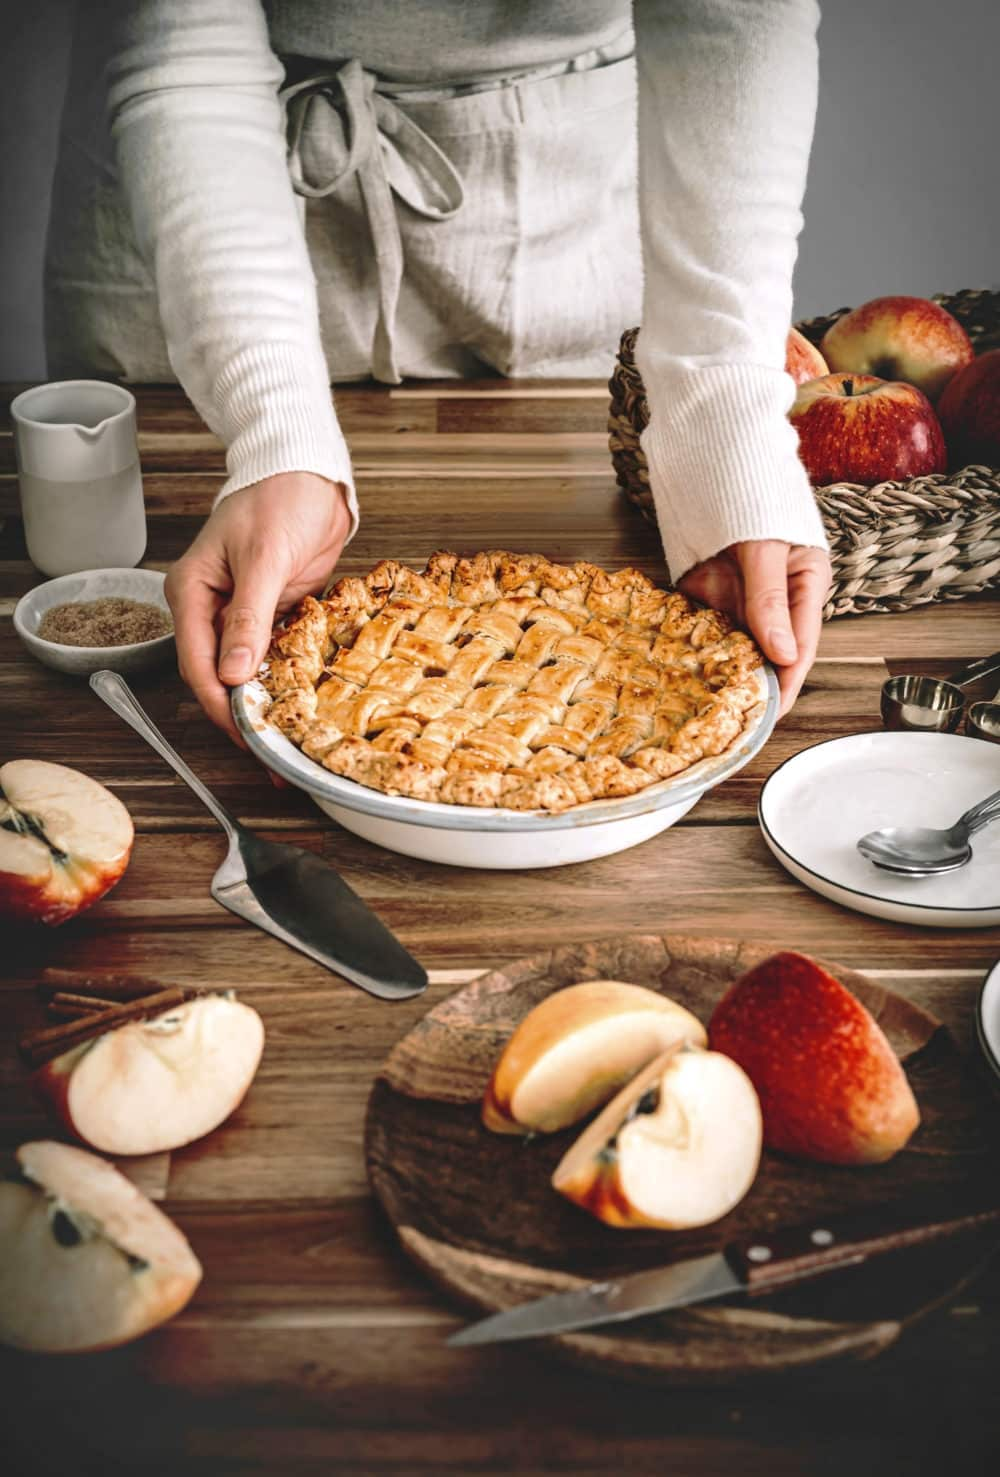 The classic apple pie recipe